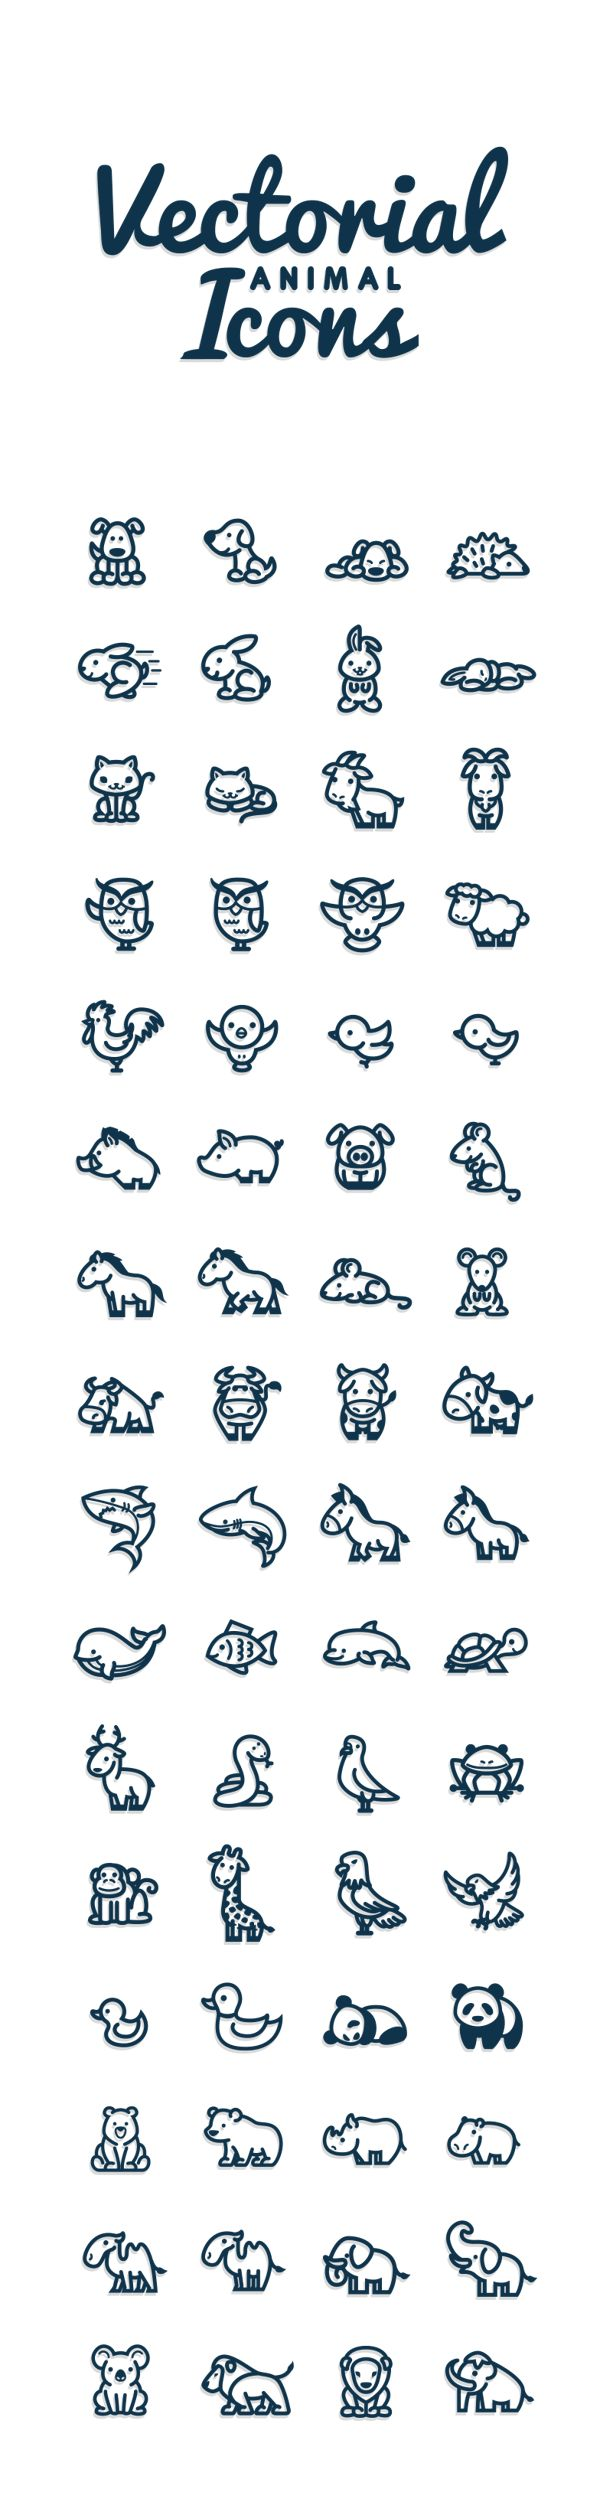 Vectorial Animals by Bodea Daniel, via Behance // Petits animaux divers : chien, hérisson, lapin, chat, chèvre, hibou, mouton, coq, oiseau, sanglier, cochon, cheval, souris, vache, requin, âne, baleine, poisson, dauphin, tortue, renne, serpent, pigeon, mouette, grenouille, singe, girafe, aigle, canard, panda, ours, rhinocéros, hippopotame, chameau, éléphant, koala, lion, mammouth